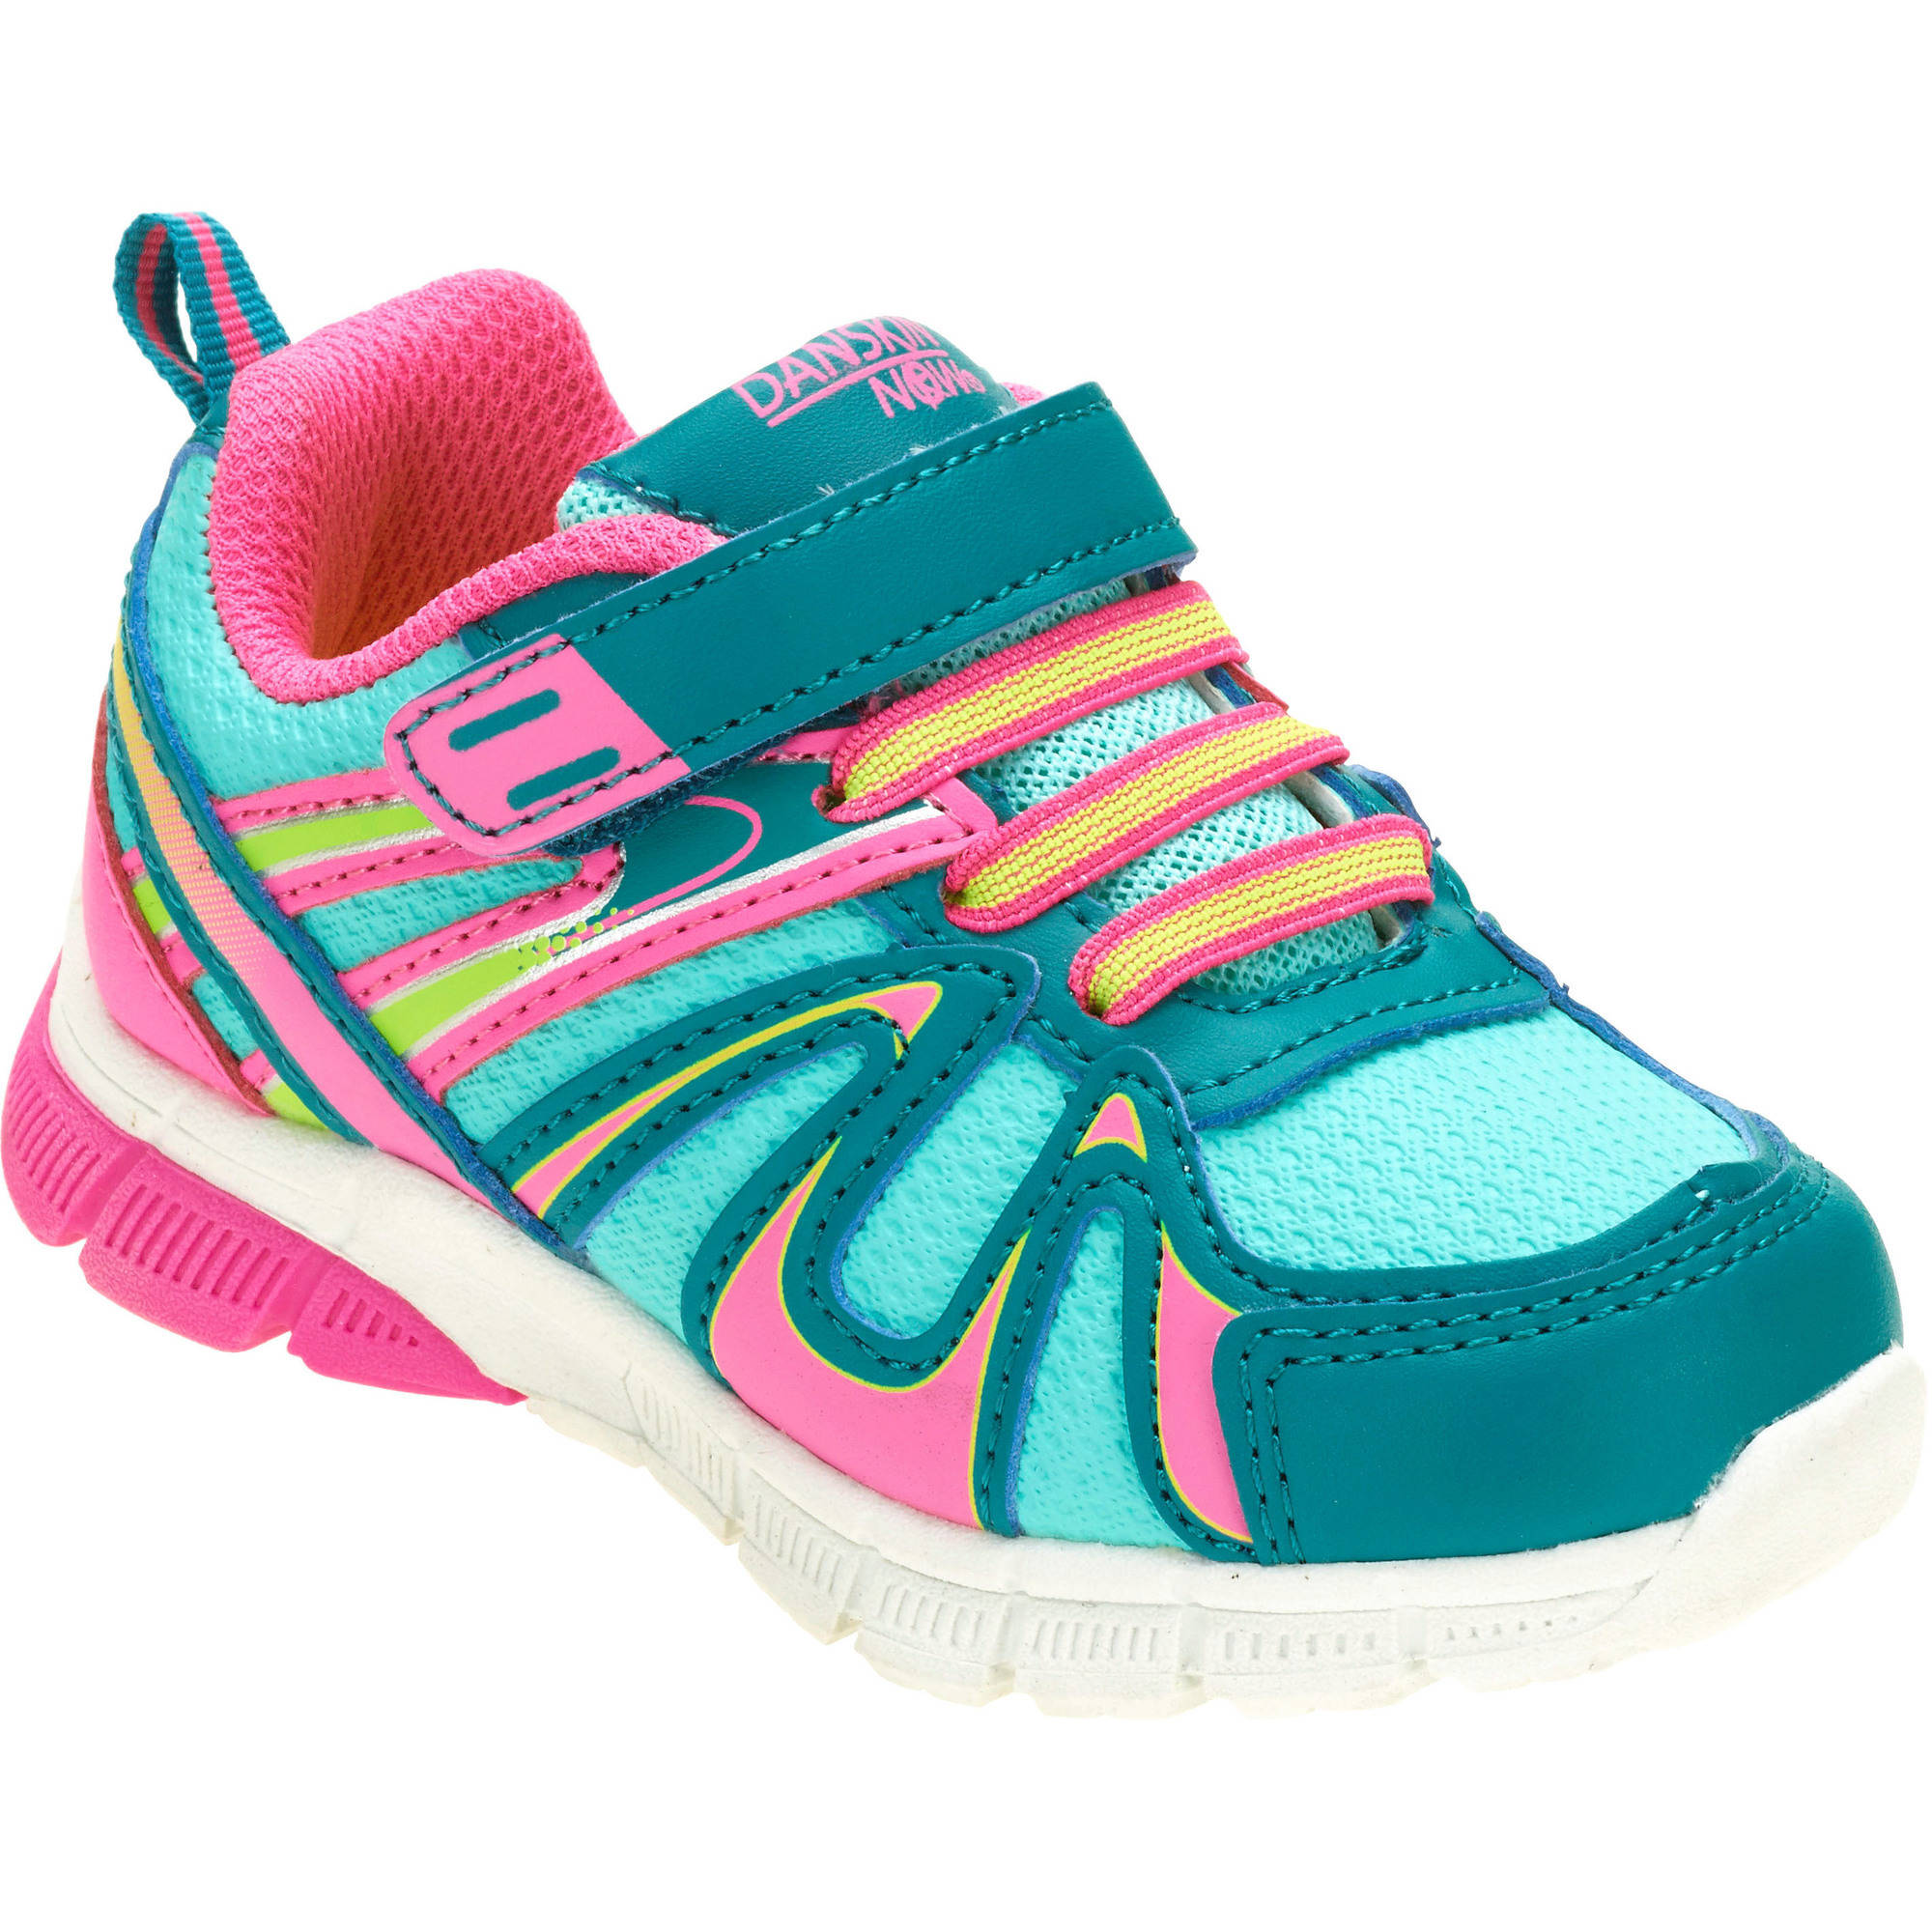 Danskin Now Toddler Girl's Bungee Lace Running Shoe